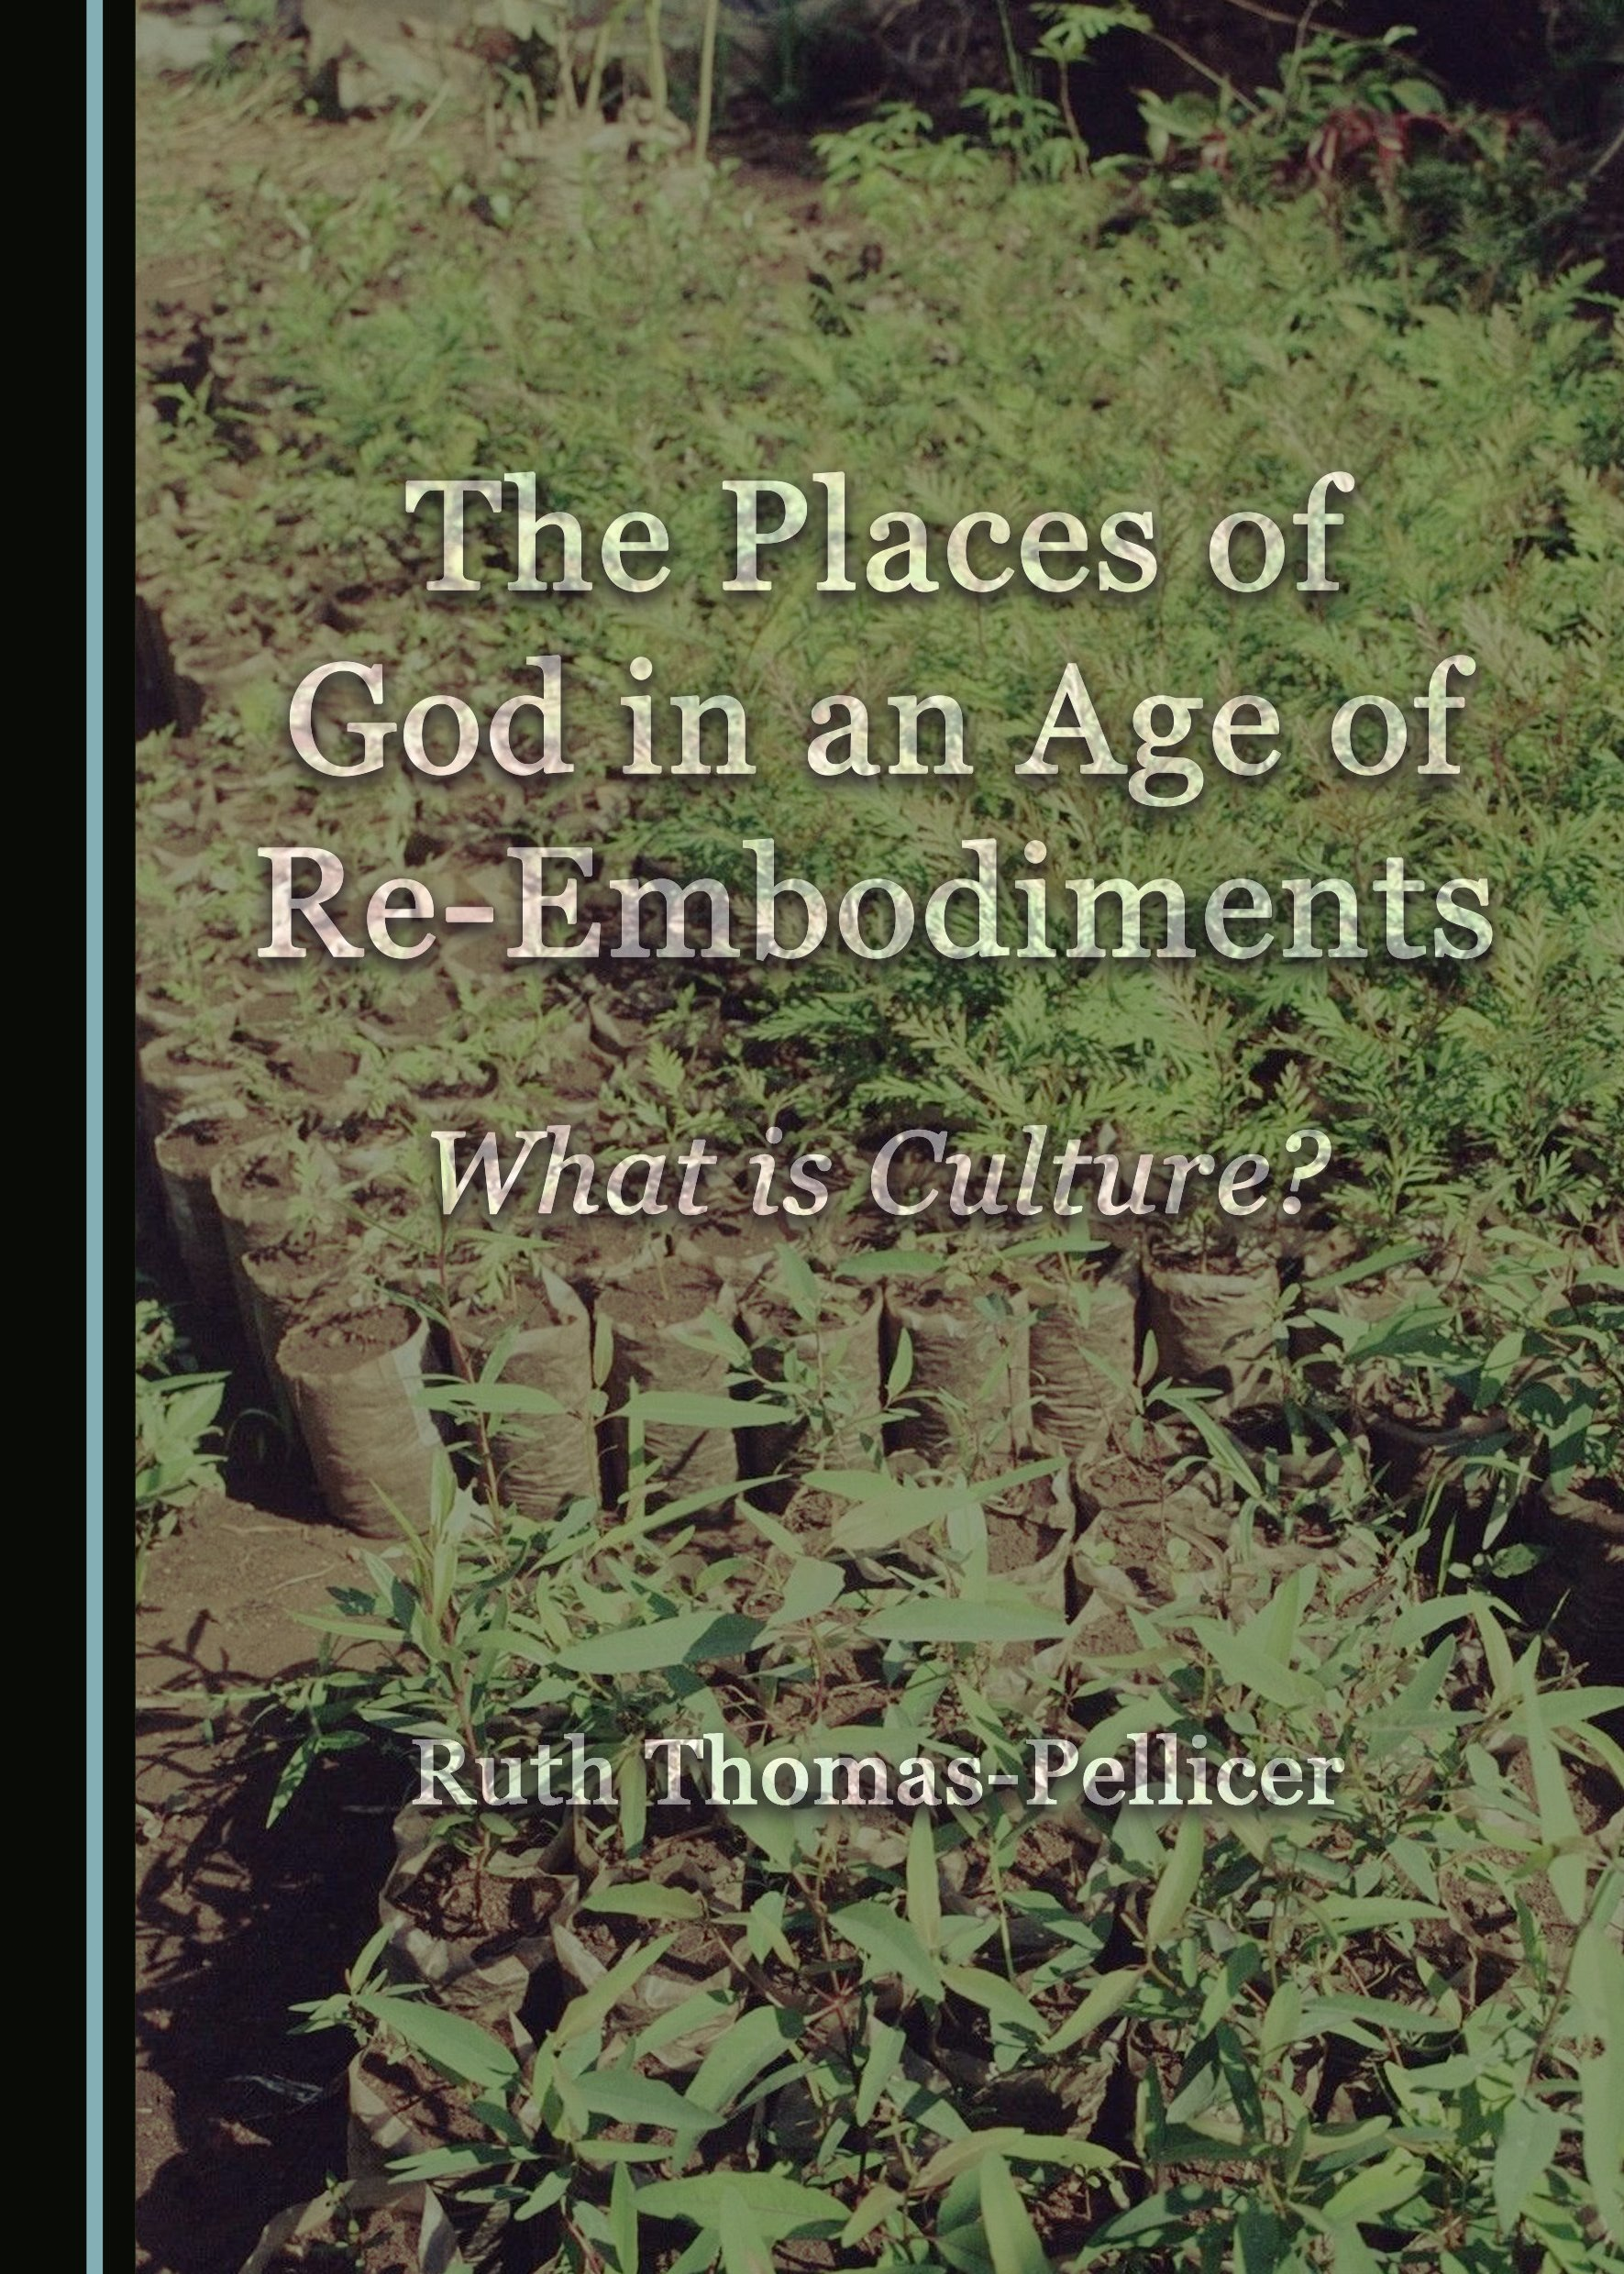 The Places of God in an Age of Re-Embodiments: What is Culture?